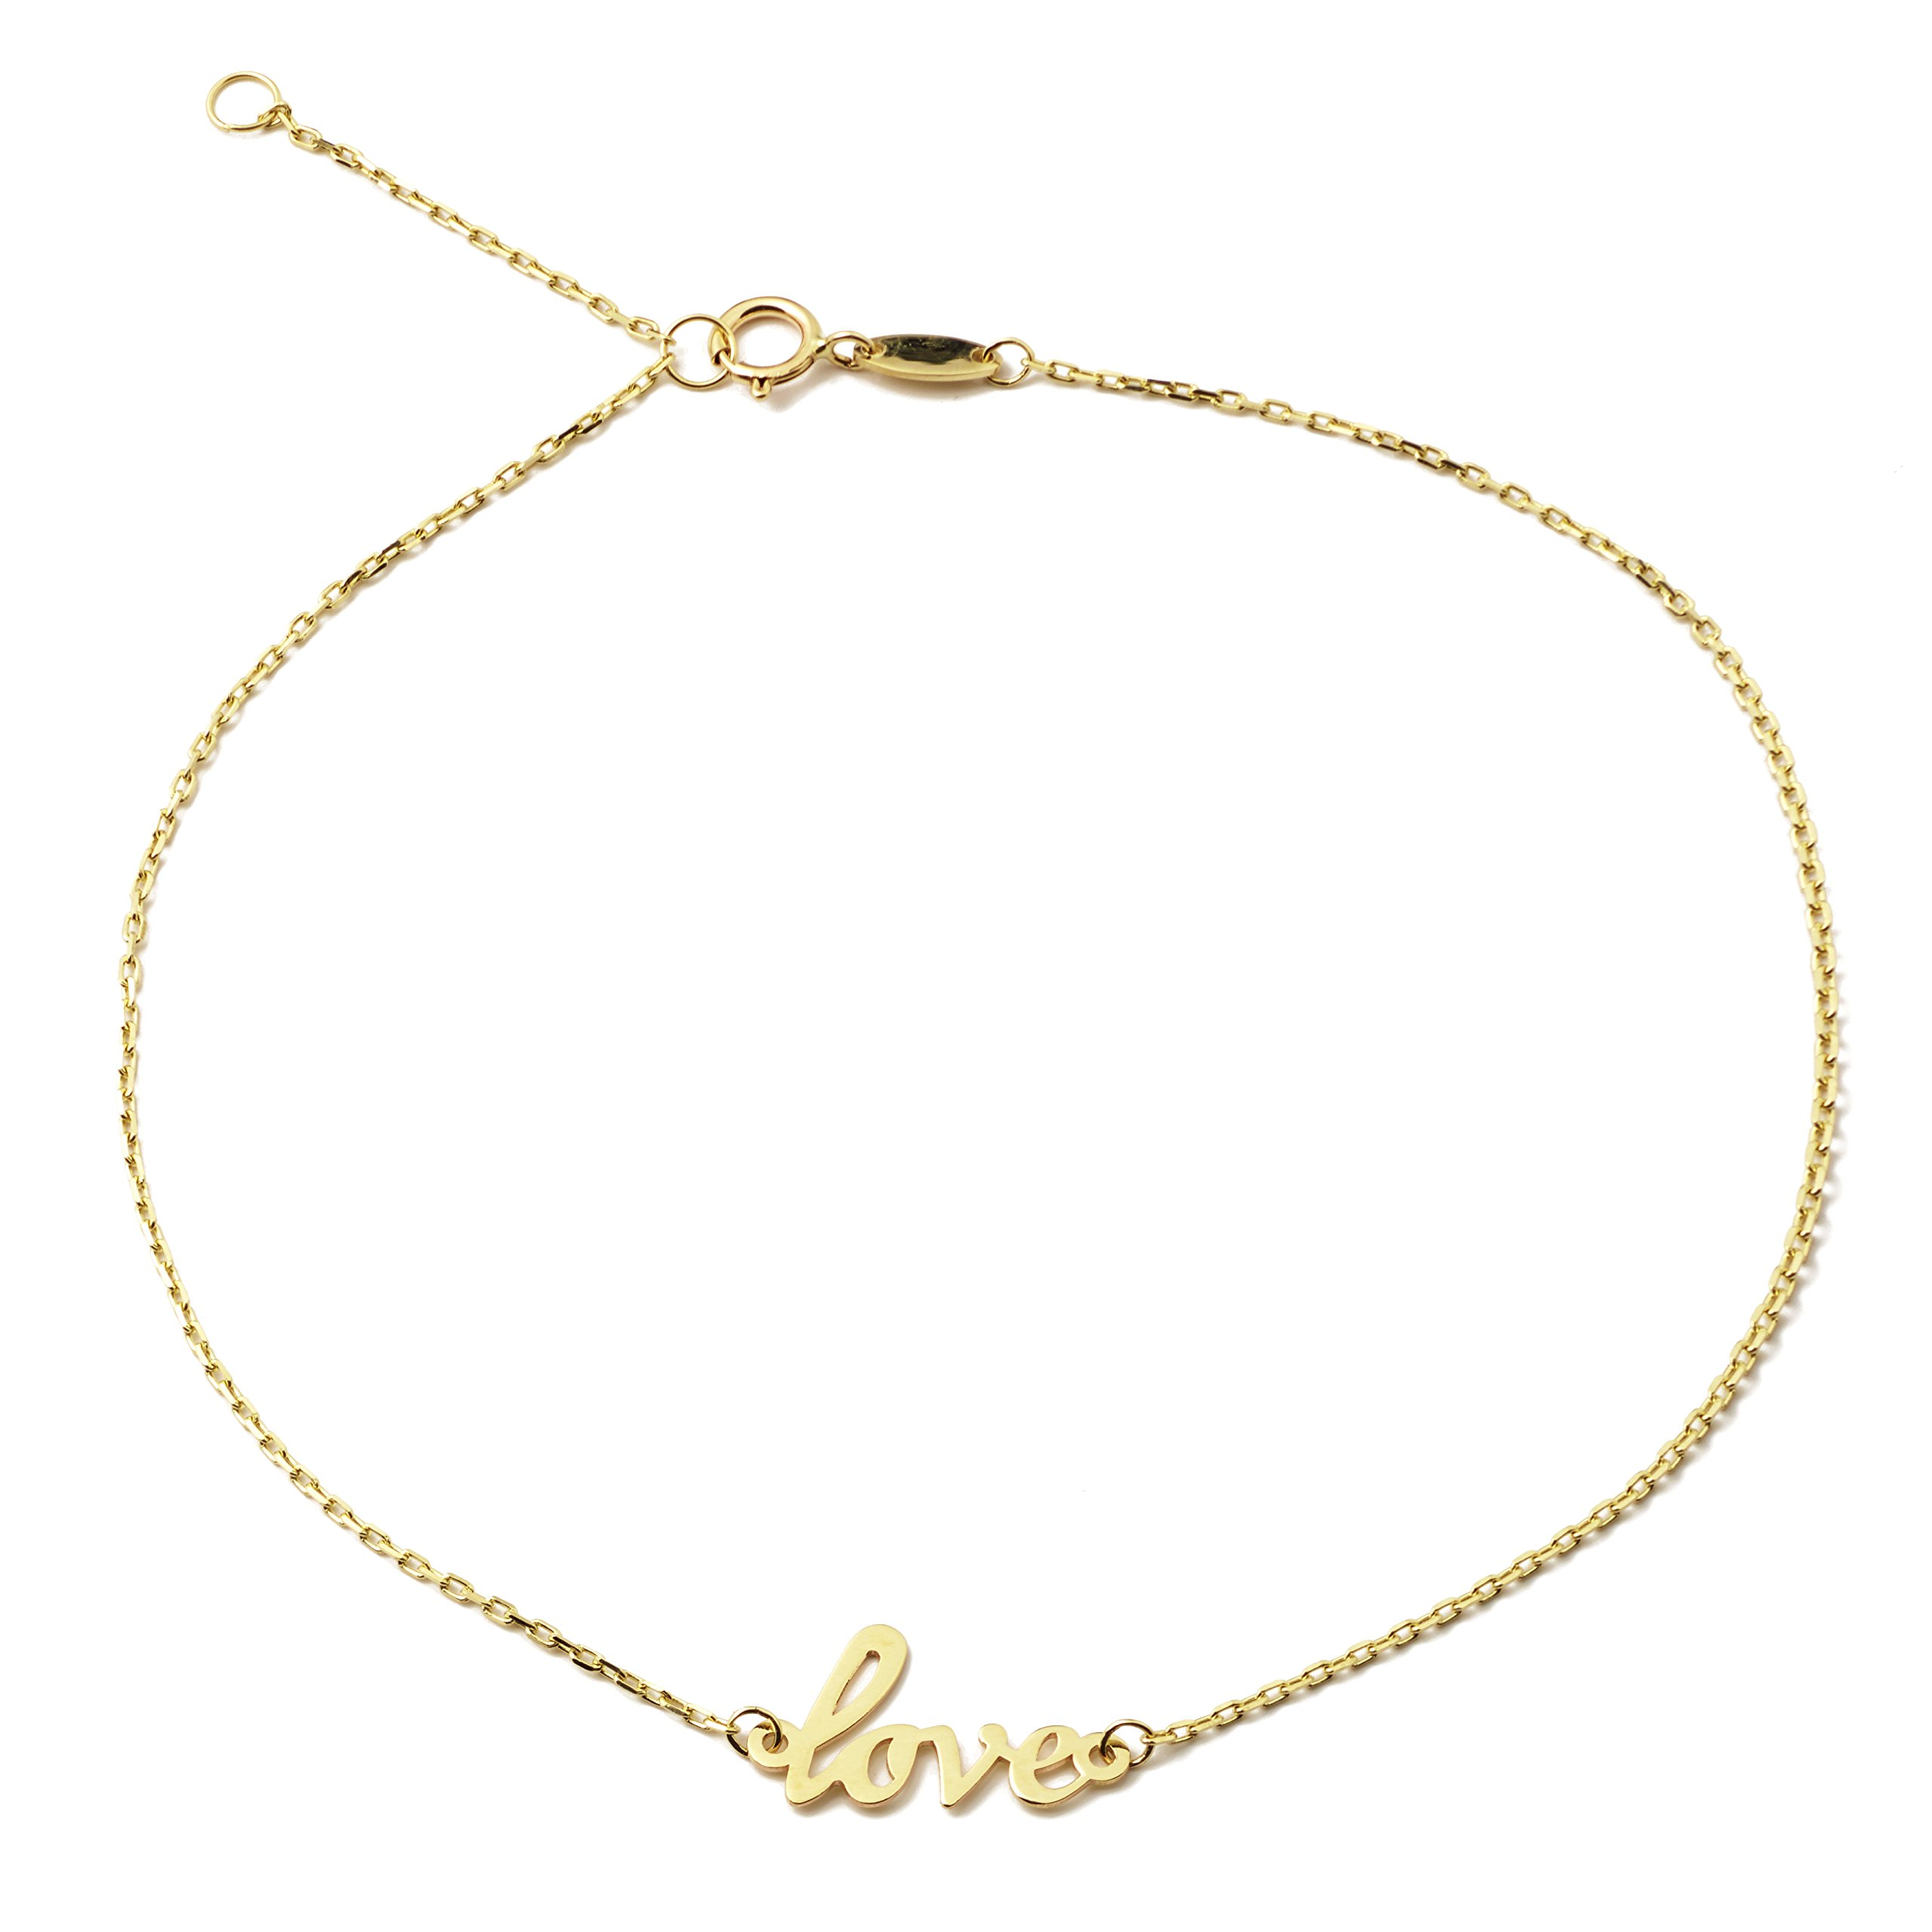 MR. BLING 10K Yellow Gold .5mm Rolo Chain with''Love'' Charm Anklet Adjustable 9'' to 10'' (#50)